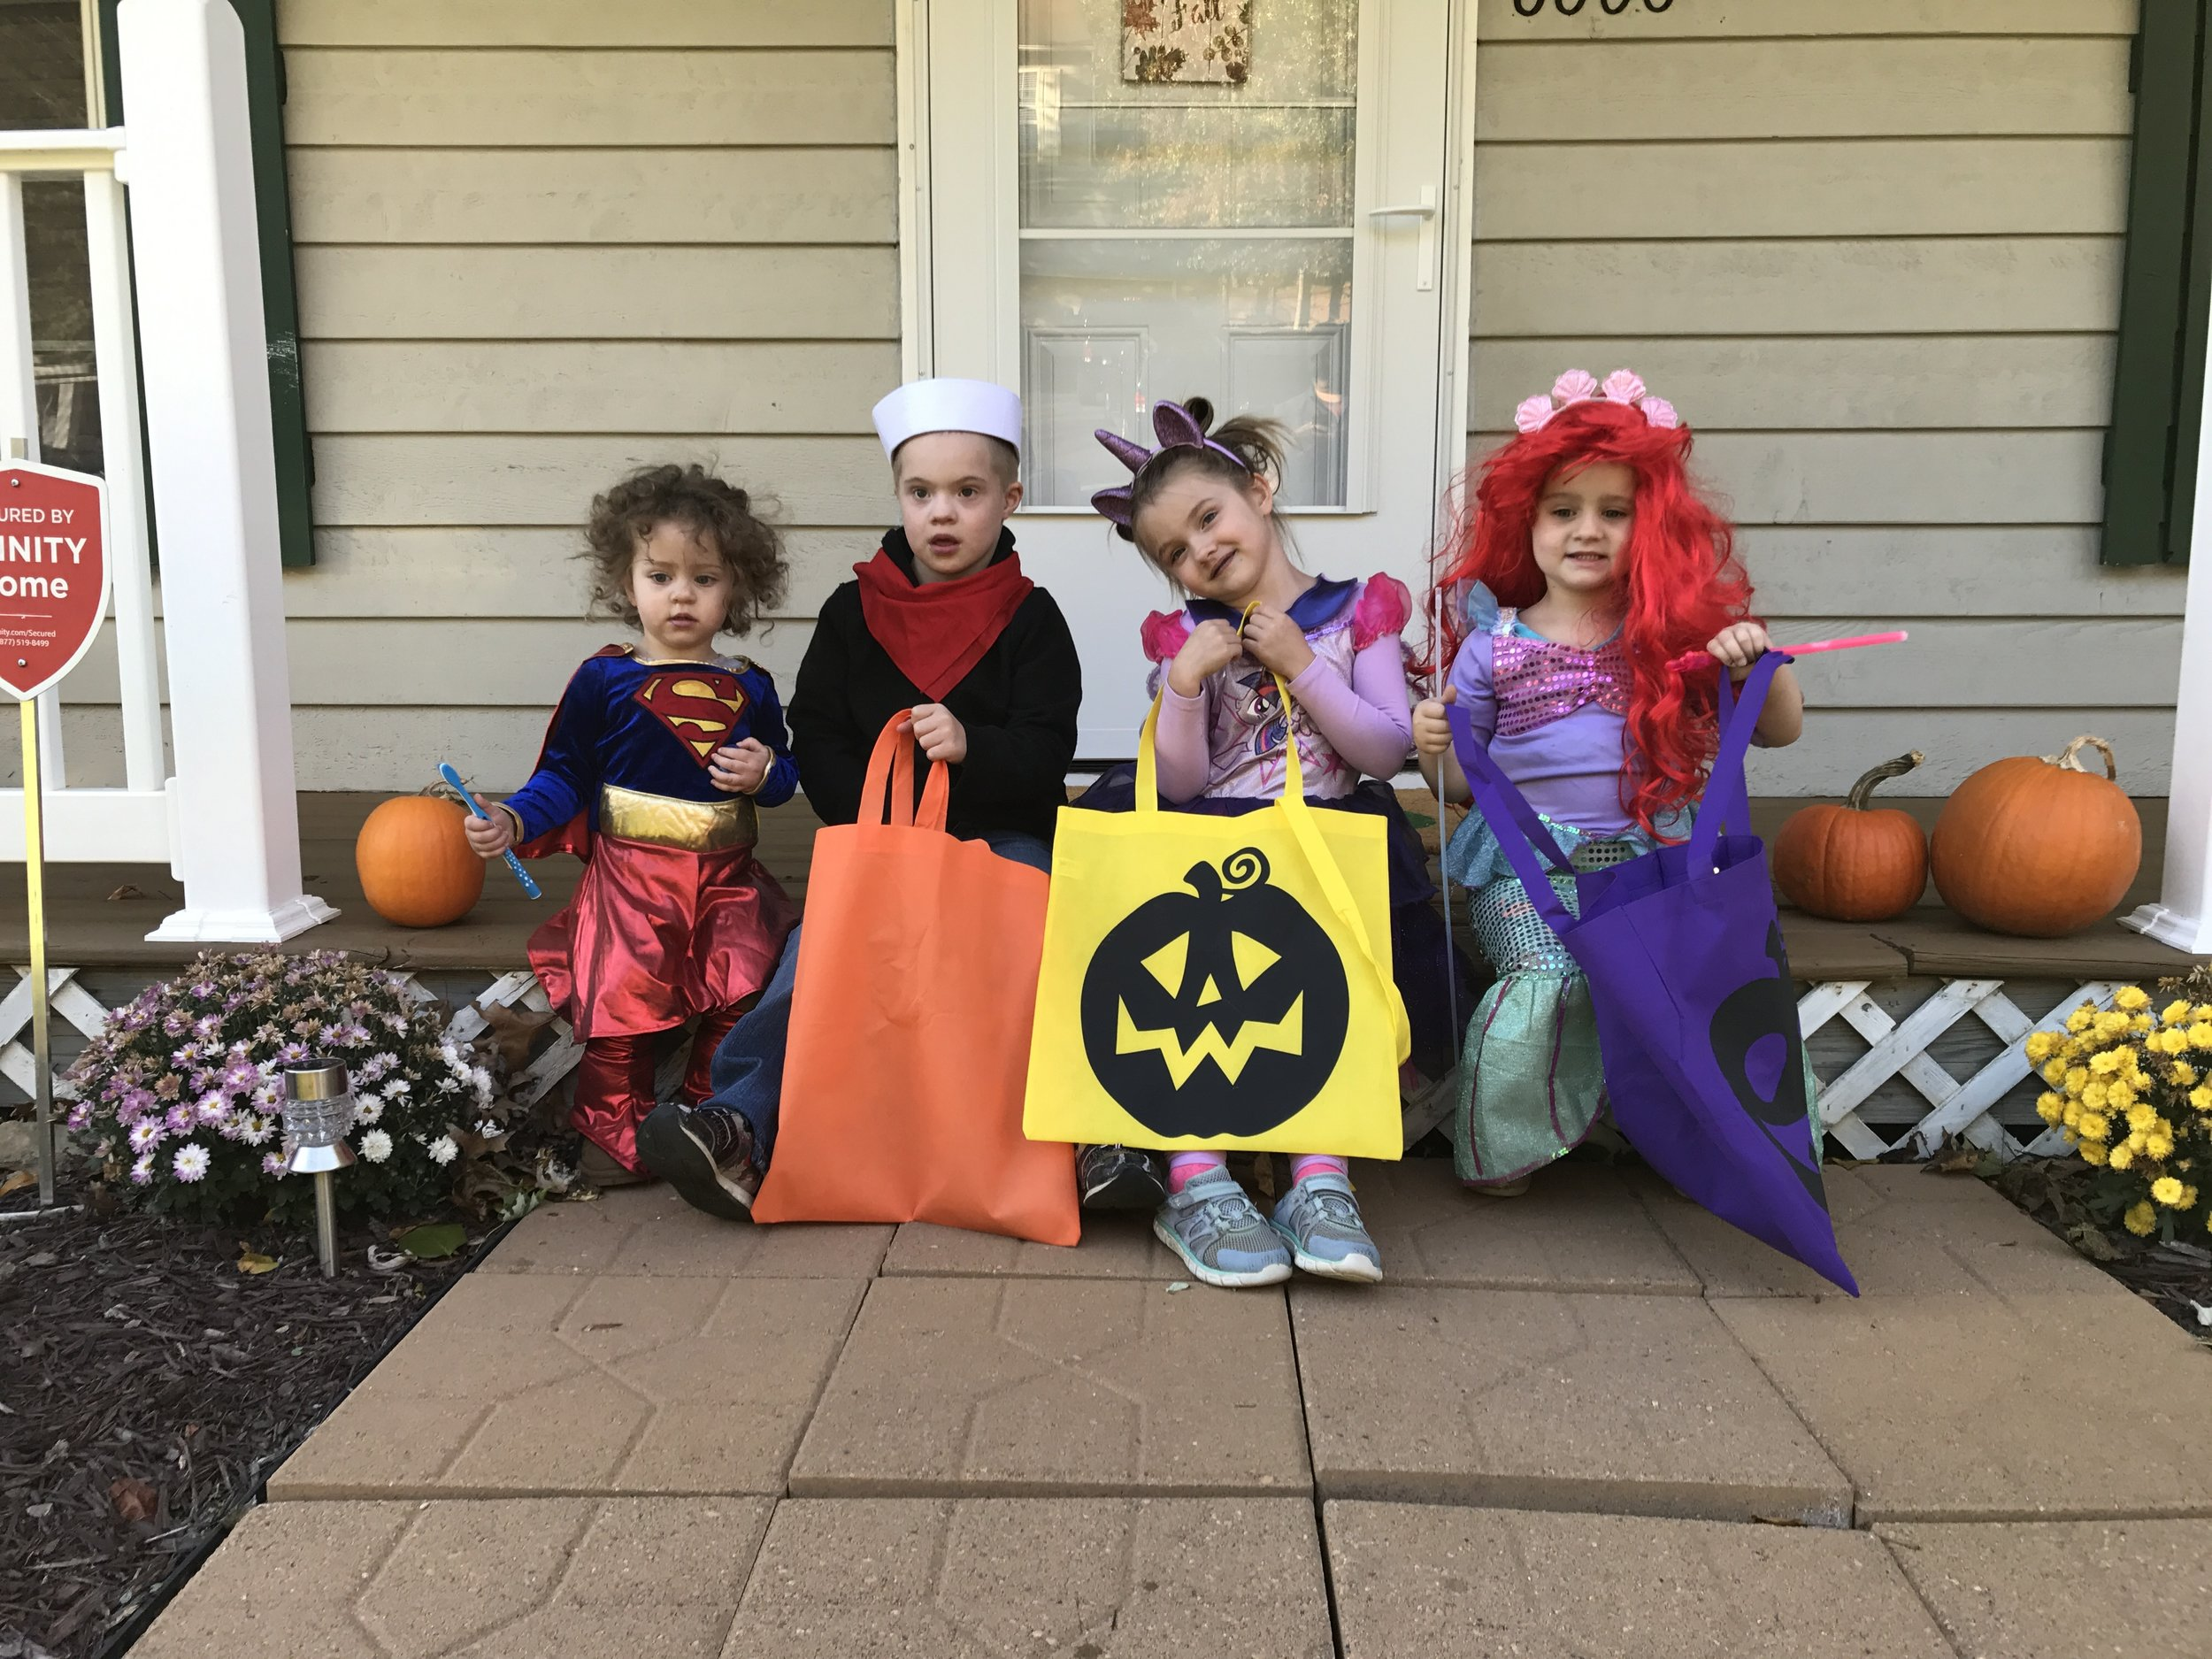 With our neighbors, new friends and Trick-orTreat team! (Zack was Popeye -- again! and Addie was Twilight Sparkle, a My Little Pony)